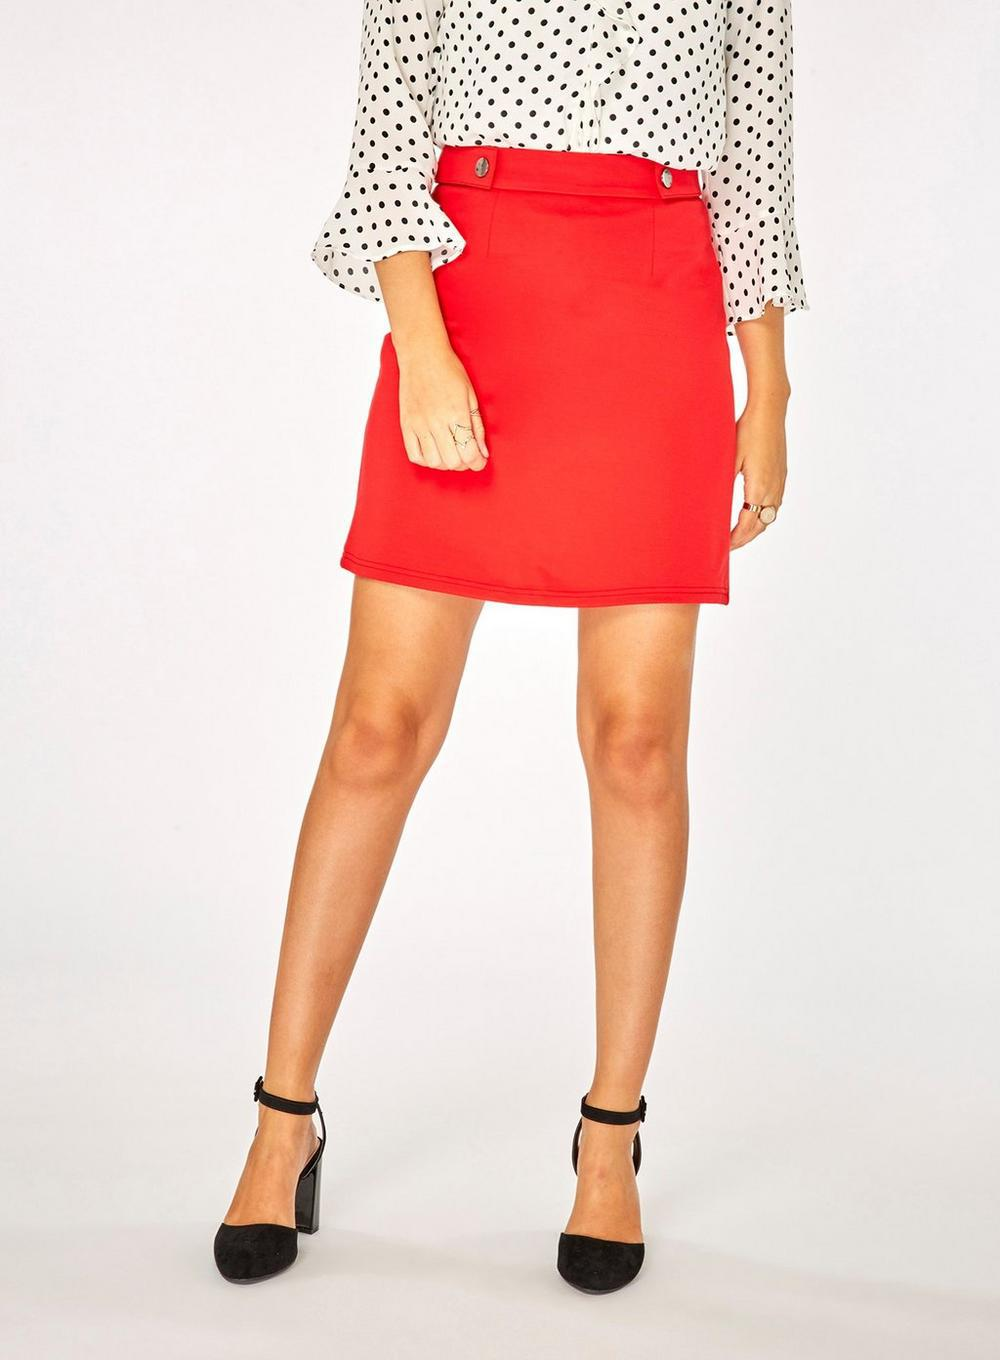 66a48a40cd Dorothy Perkins Red Side Popper Mini Skirt in Red - Lyst